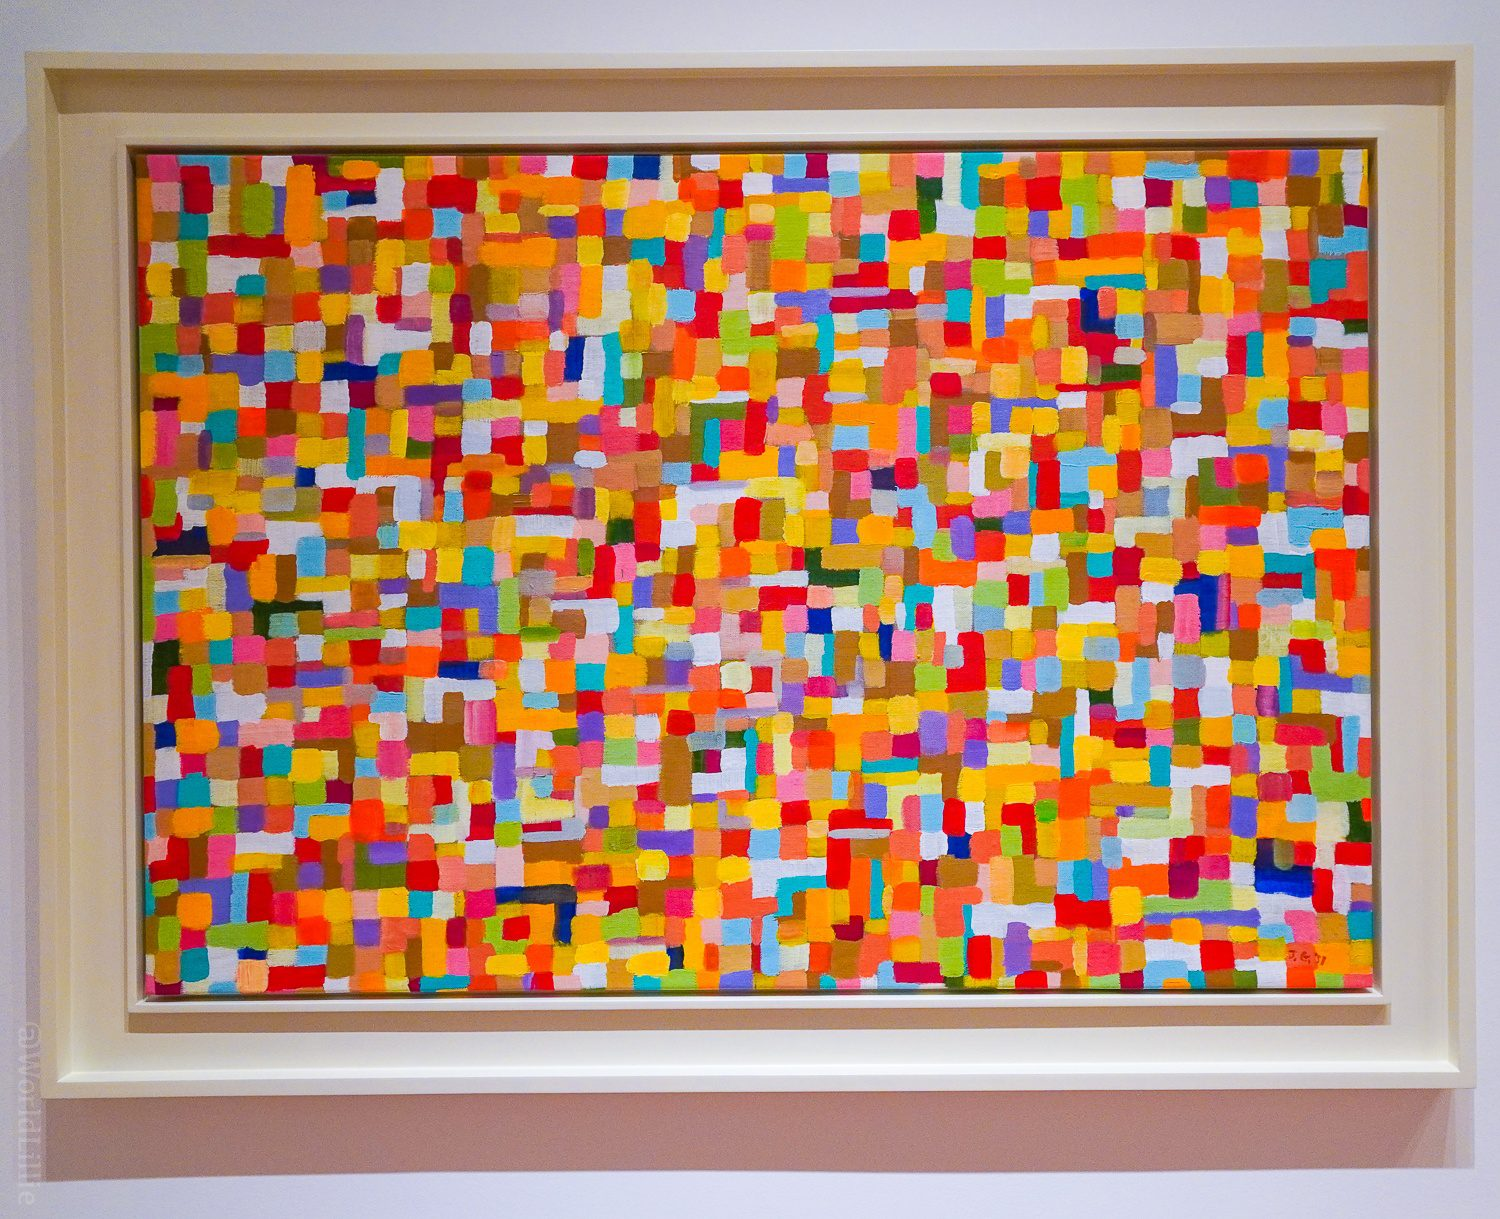 Modern art excitement in painting form!